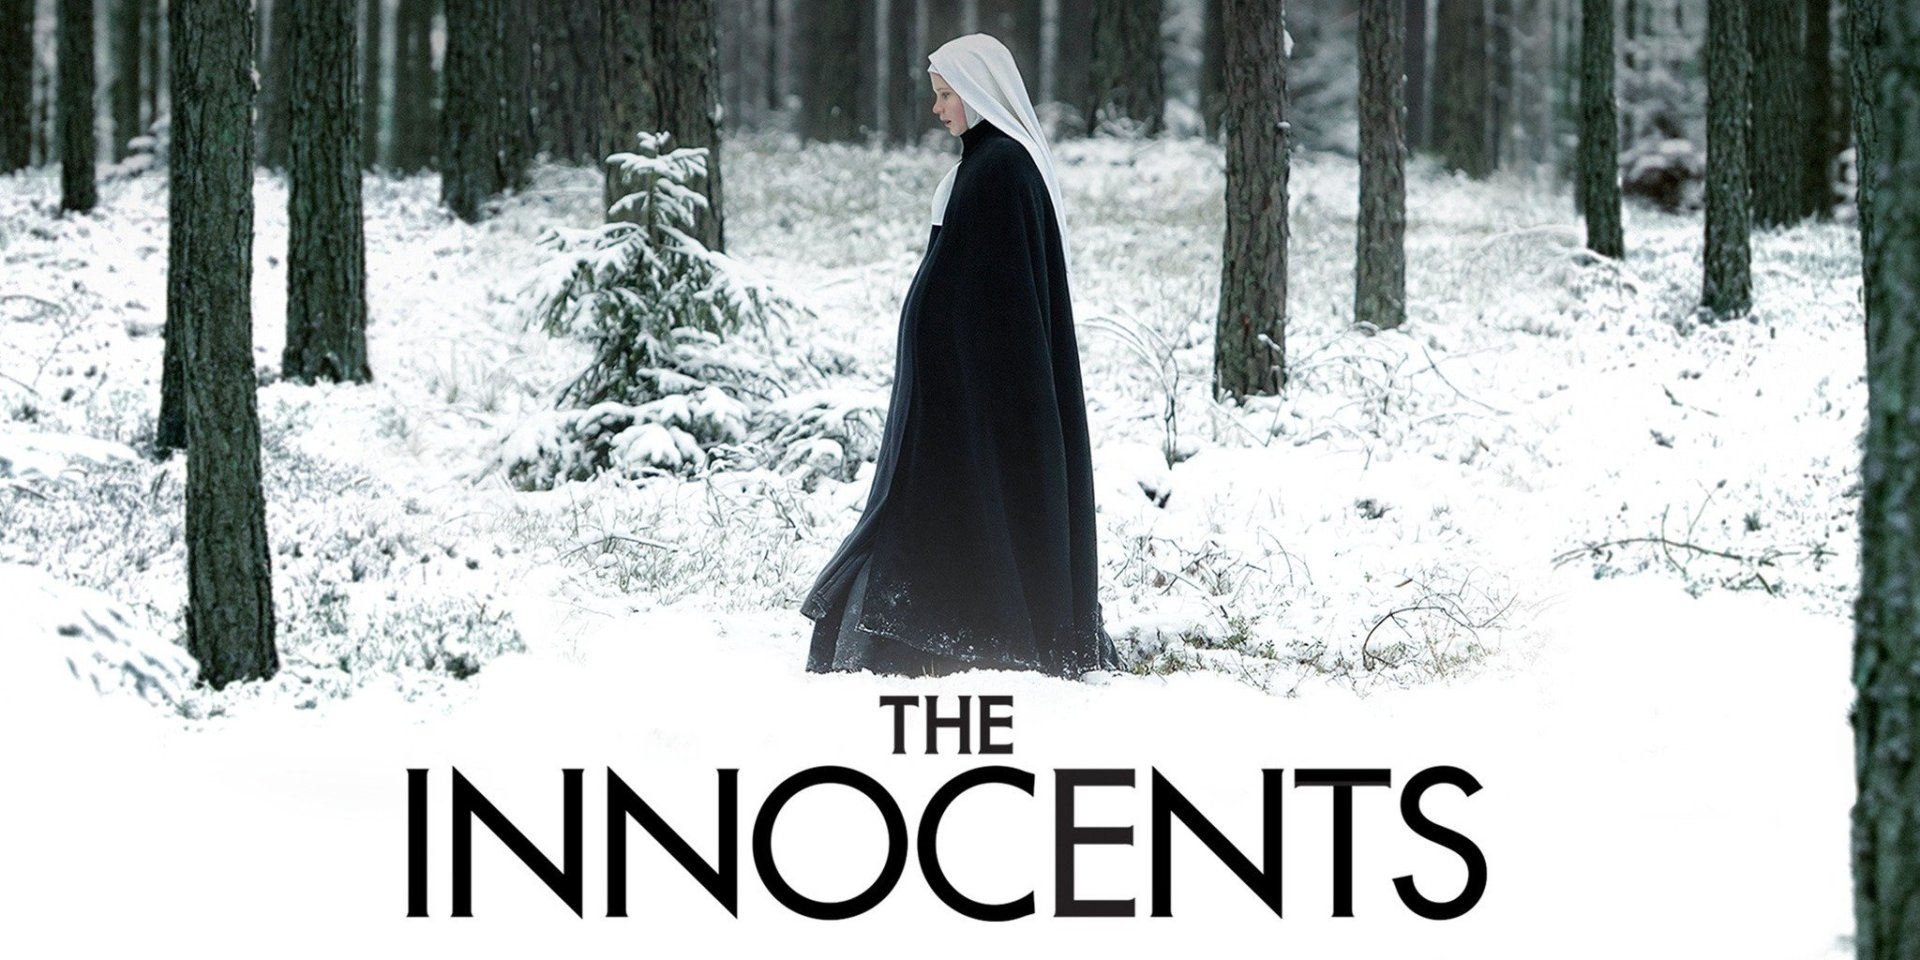 the_innocents_2016_11274627